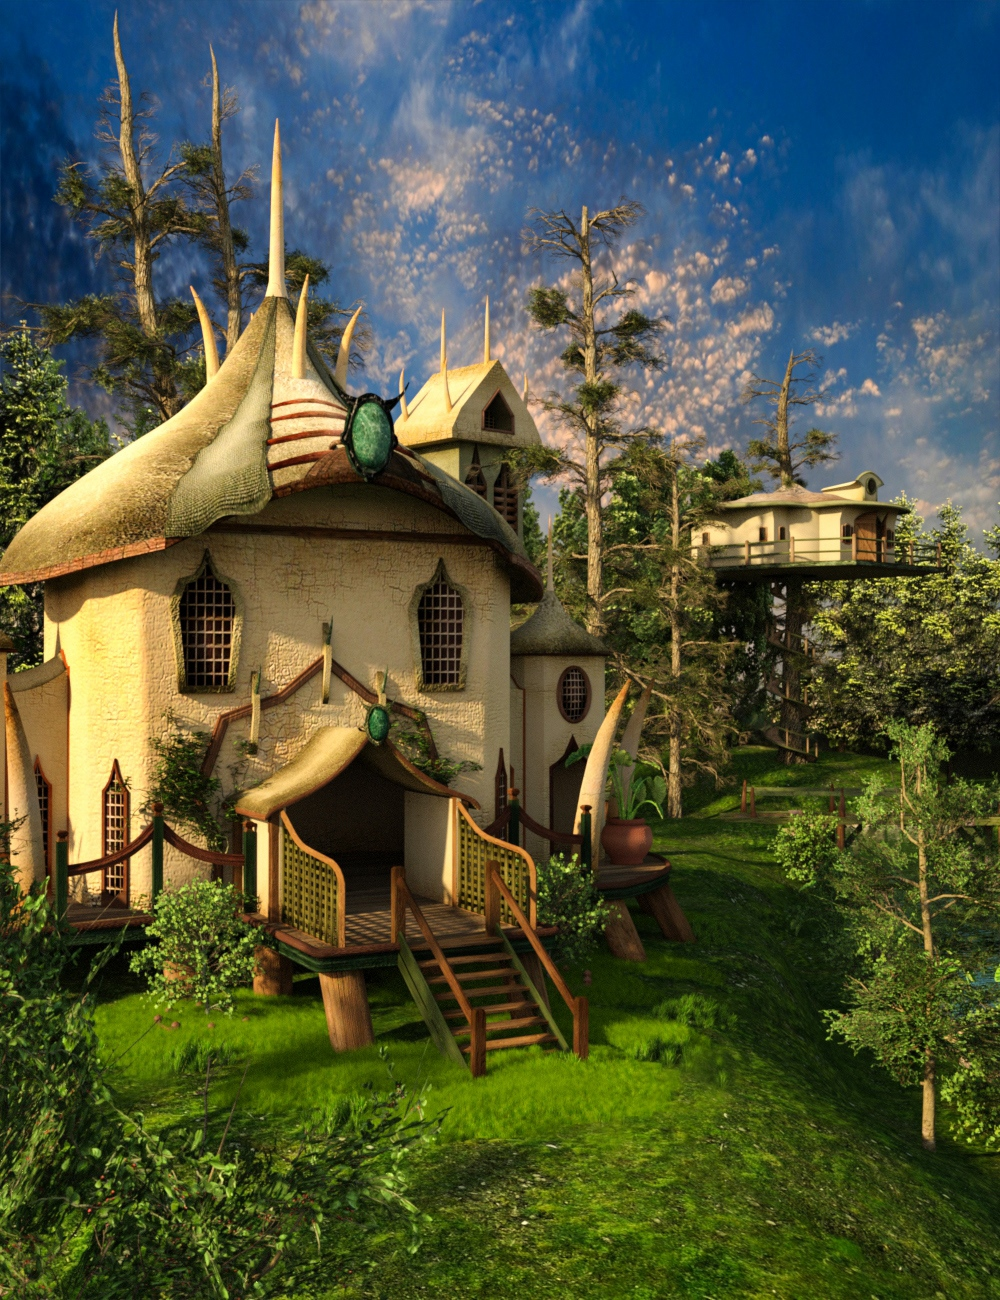 Elf Village and World Builder by: Magix 101, 3D Models by Daz 3D